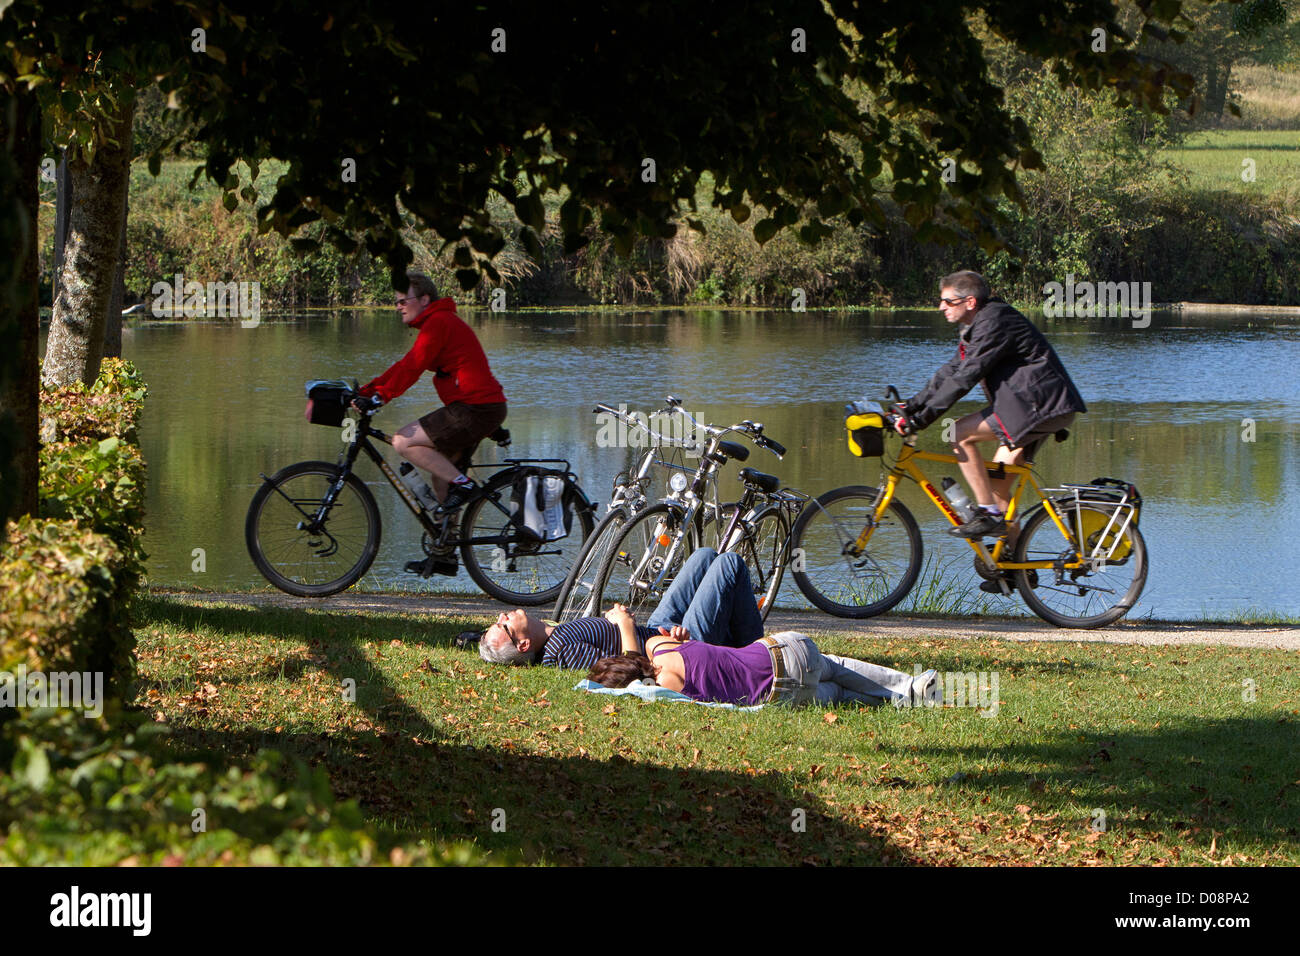 CYCLISTS ON THE 'LOIRE A VELO' CYCLING ITINERARY SAVONNIERES INDRE-ET-LOIRE (37) FRANCE - Stock Image